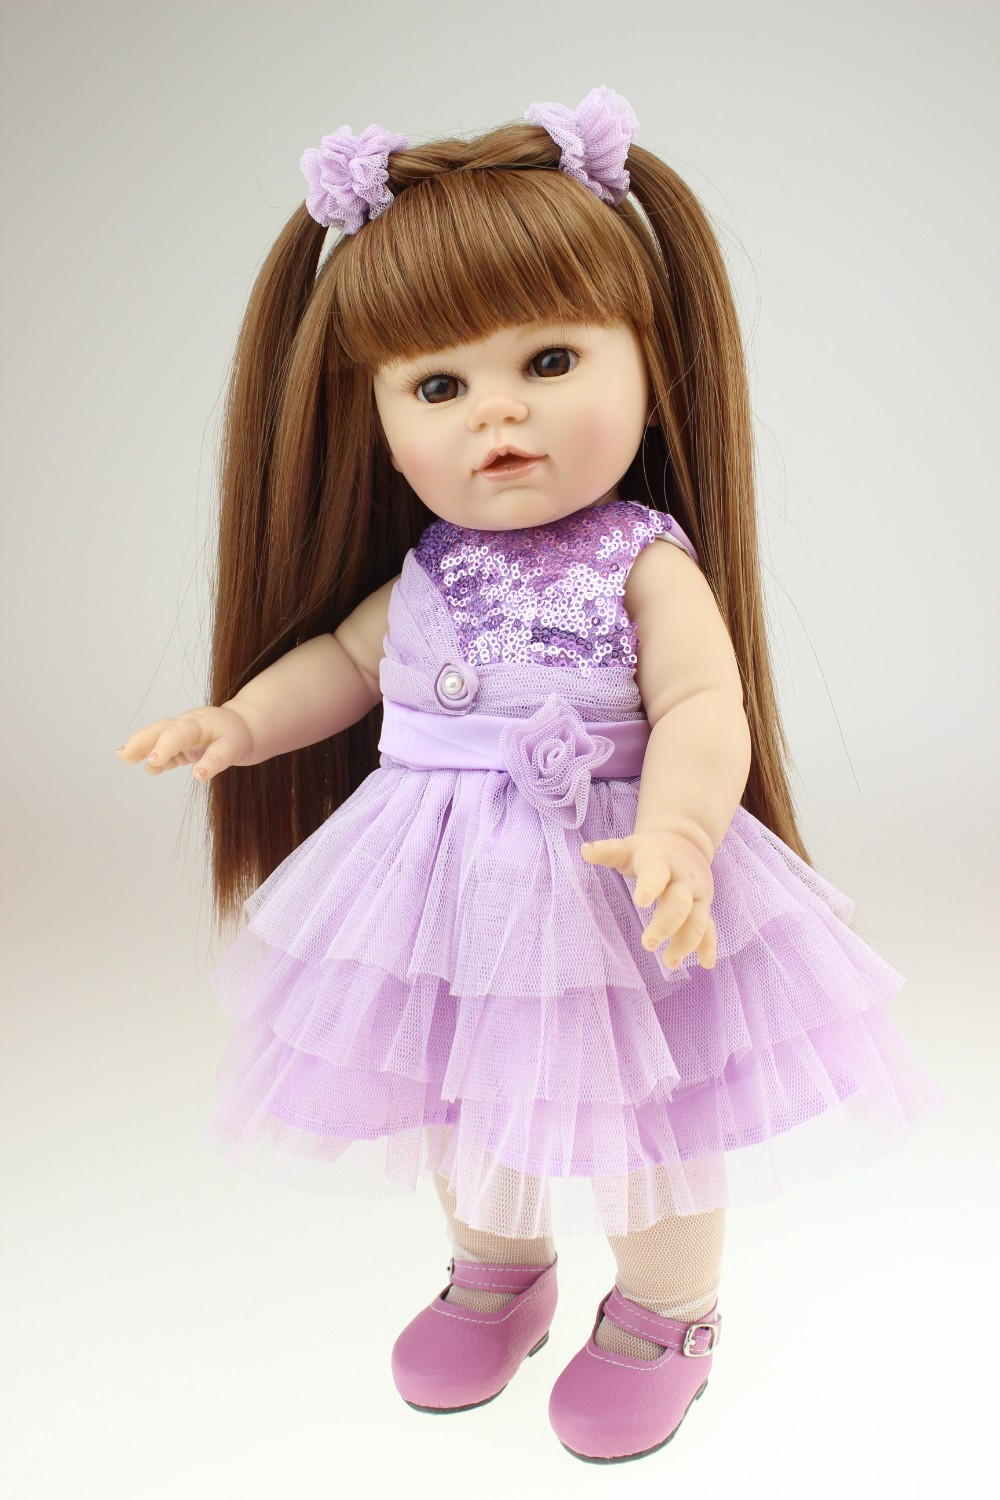 Girl Toys Doll : Aliexpress buy american girl doll toys cm full